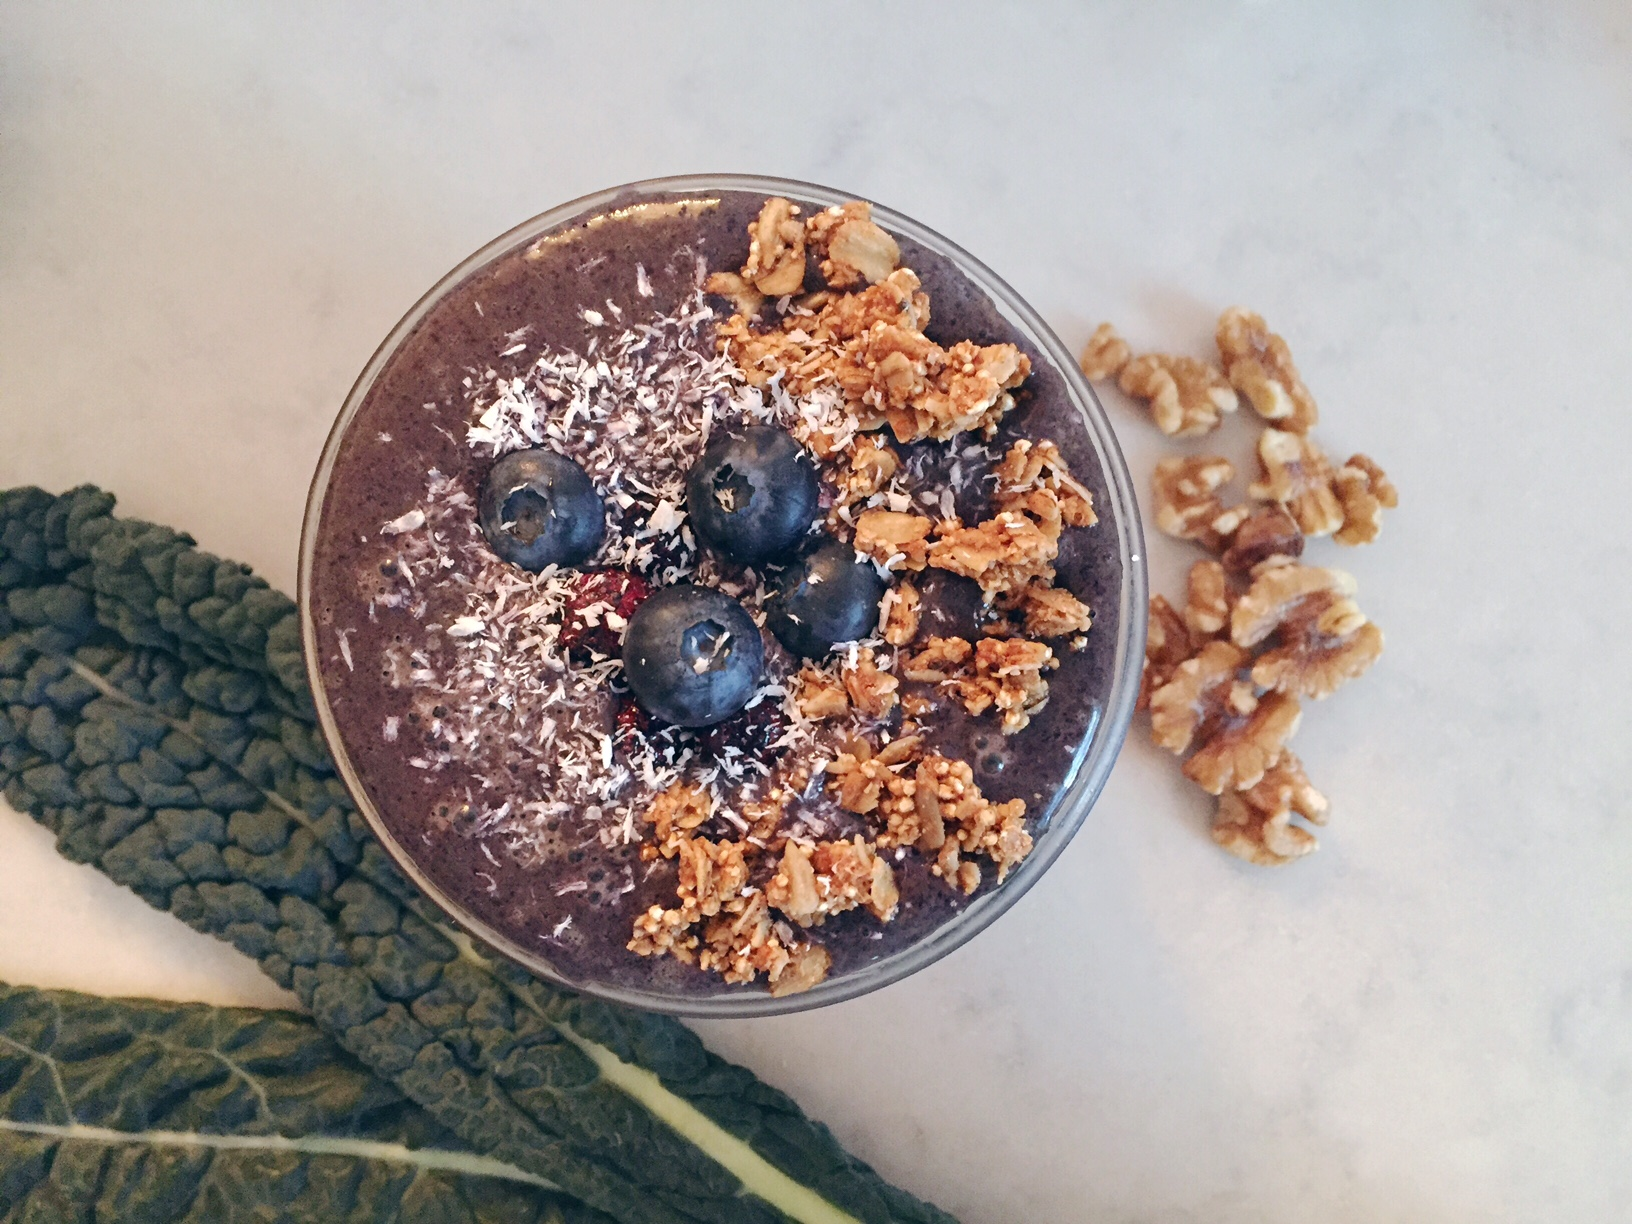 A smoothie full of antioxidants from blueberries, kale, and cinnamon plus the omega-3 fatty acids in walnuts will certainly give your brain (and mood) a boost!